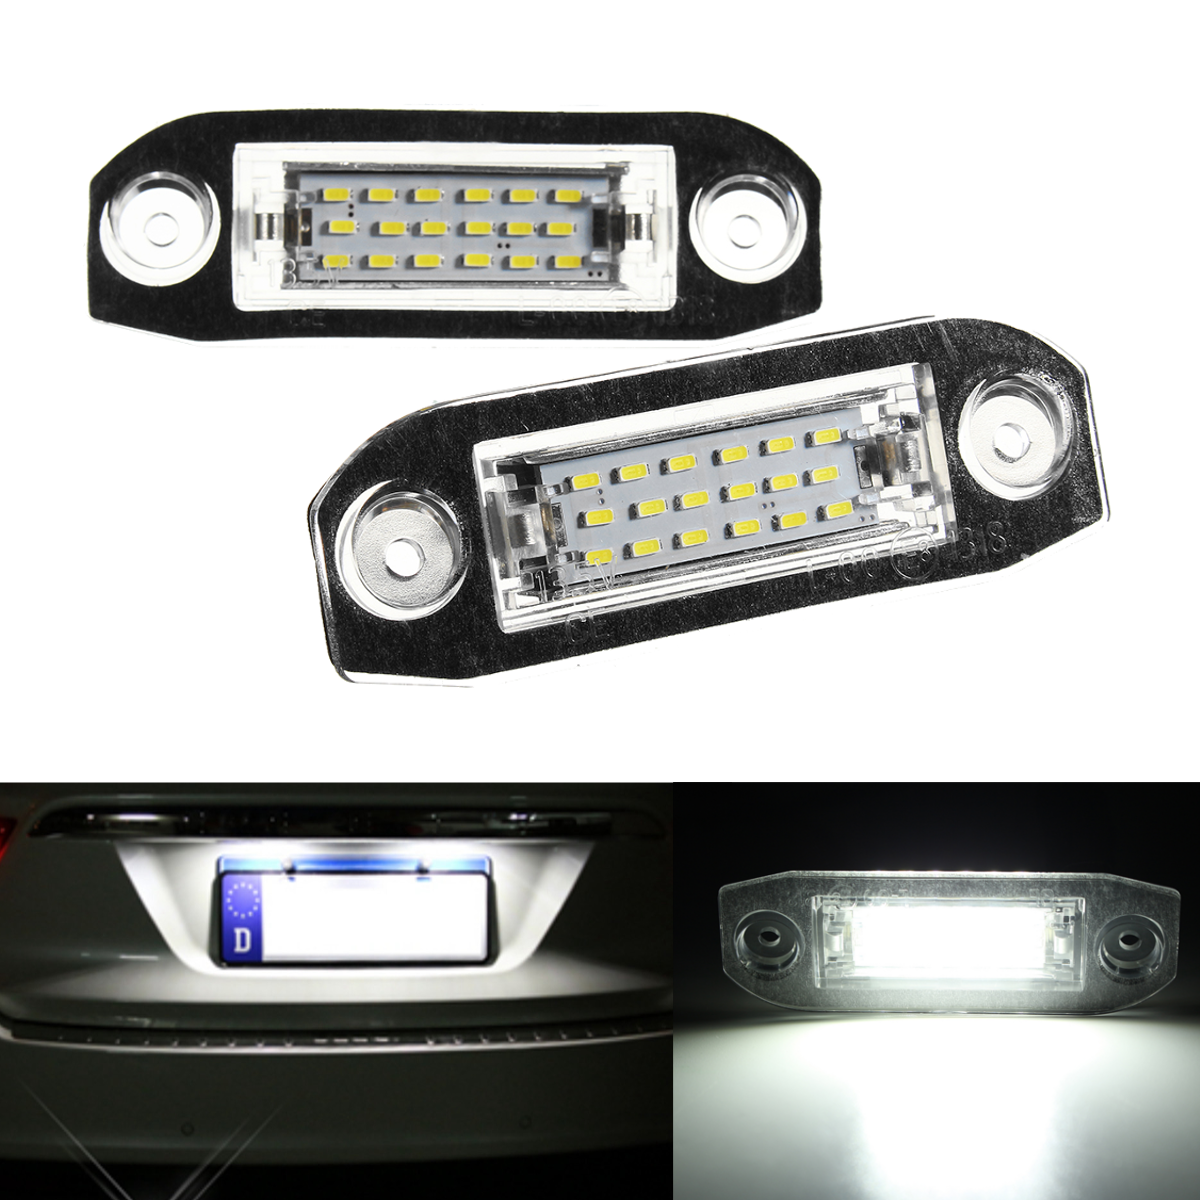 2x Led Licence Number Plate Light For Volvo C70 S40 S60 V50 V60 V70 Xc60 Xc90 Number Plate Volvo C70 Volvo